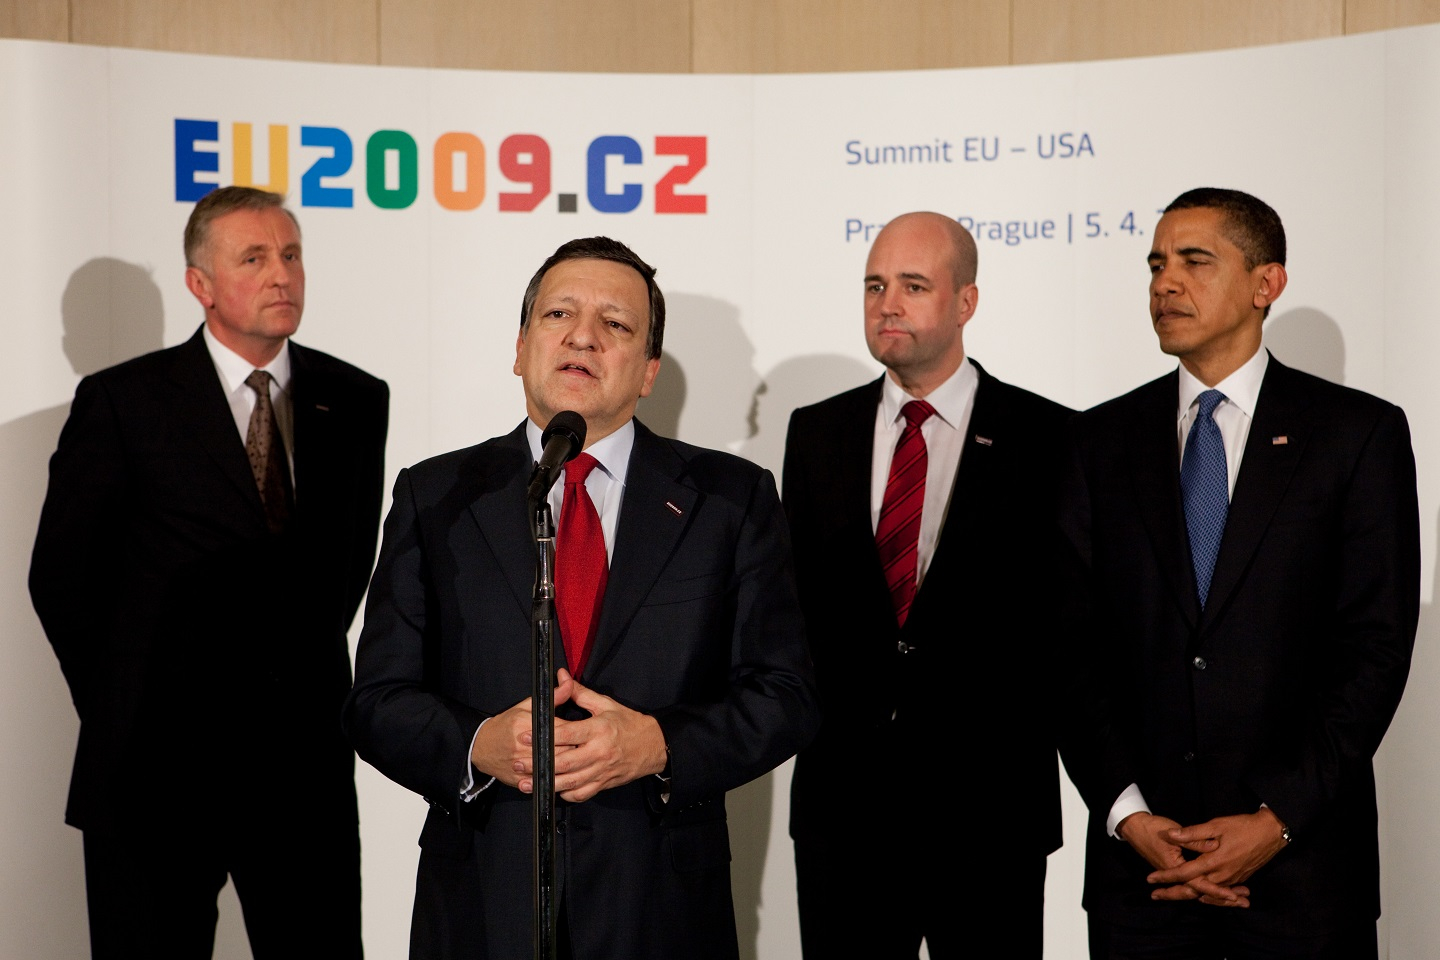 Mirek Topolánek, Czech Prime Minister and President in office of the Council of the EU, José Manuel Barroso, Fredrik Reinfeldt, Swedish Prime Minister, and Barack Obama (from left to right), Prague, April 4, 2009.